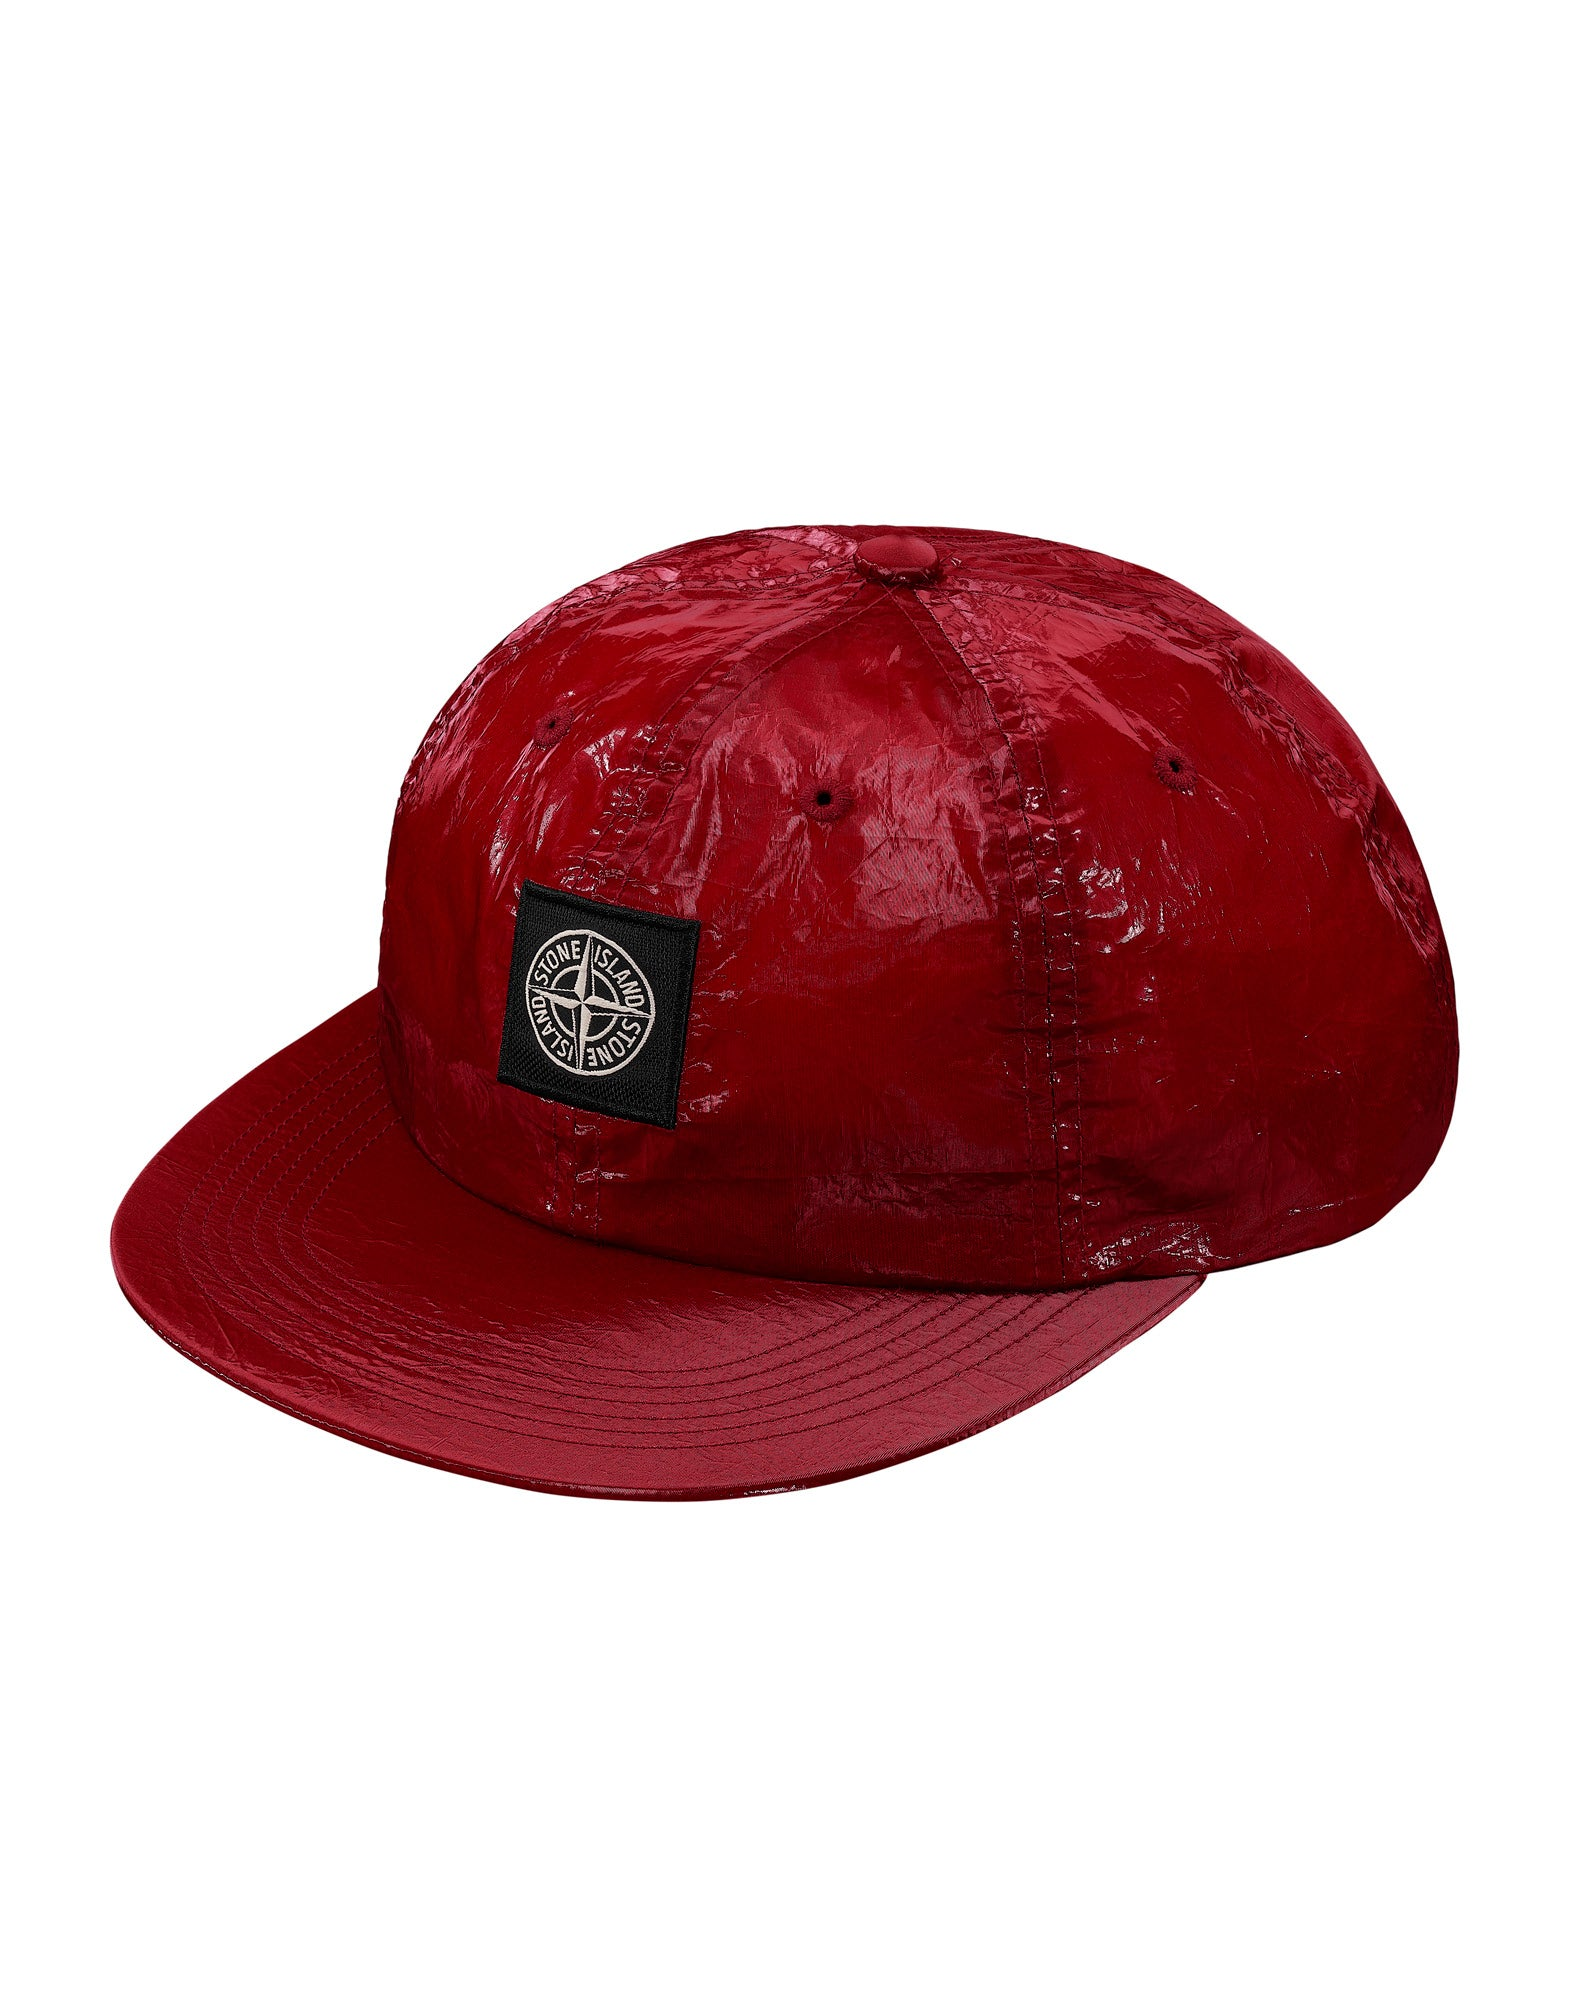 902S5 NEW SILK LIGHT Cap in Red